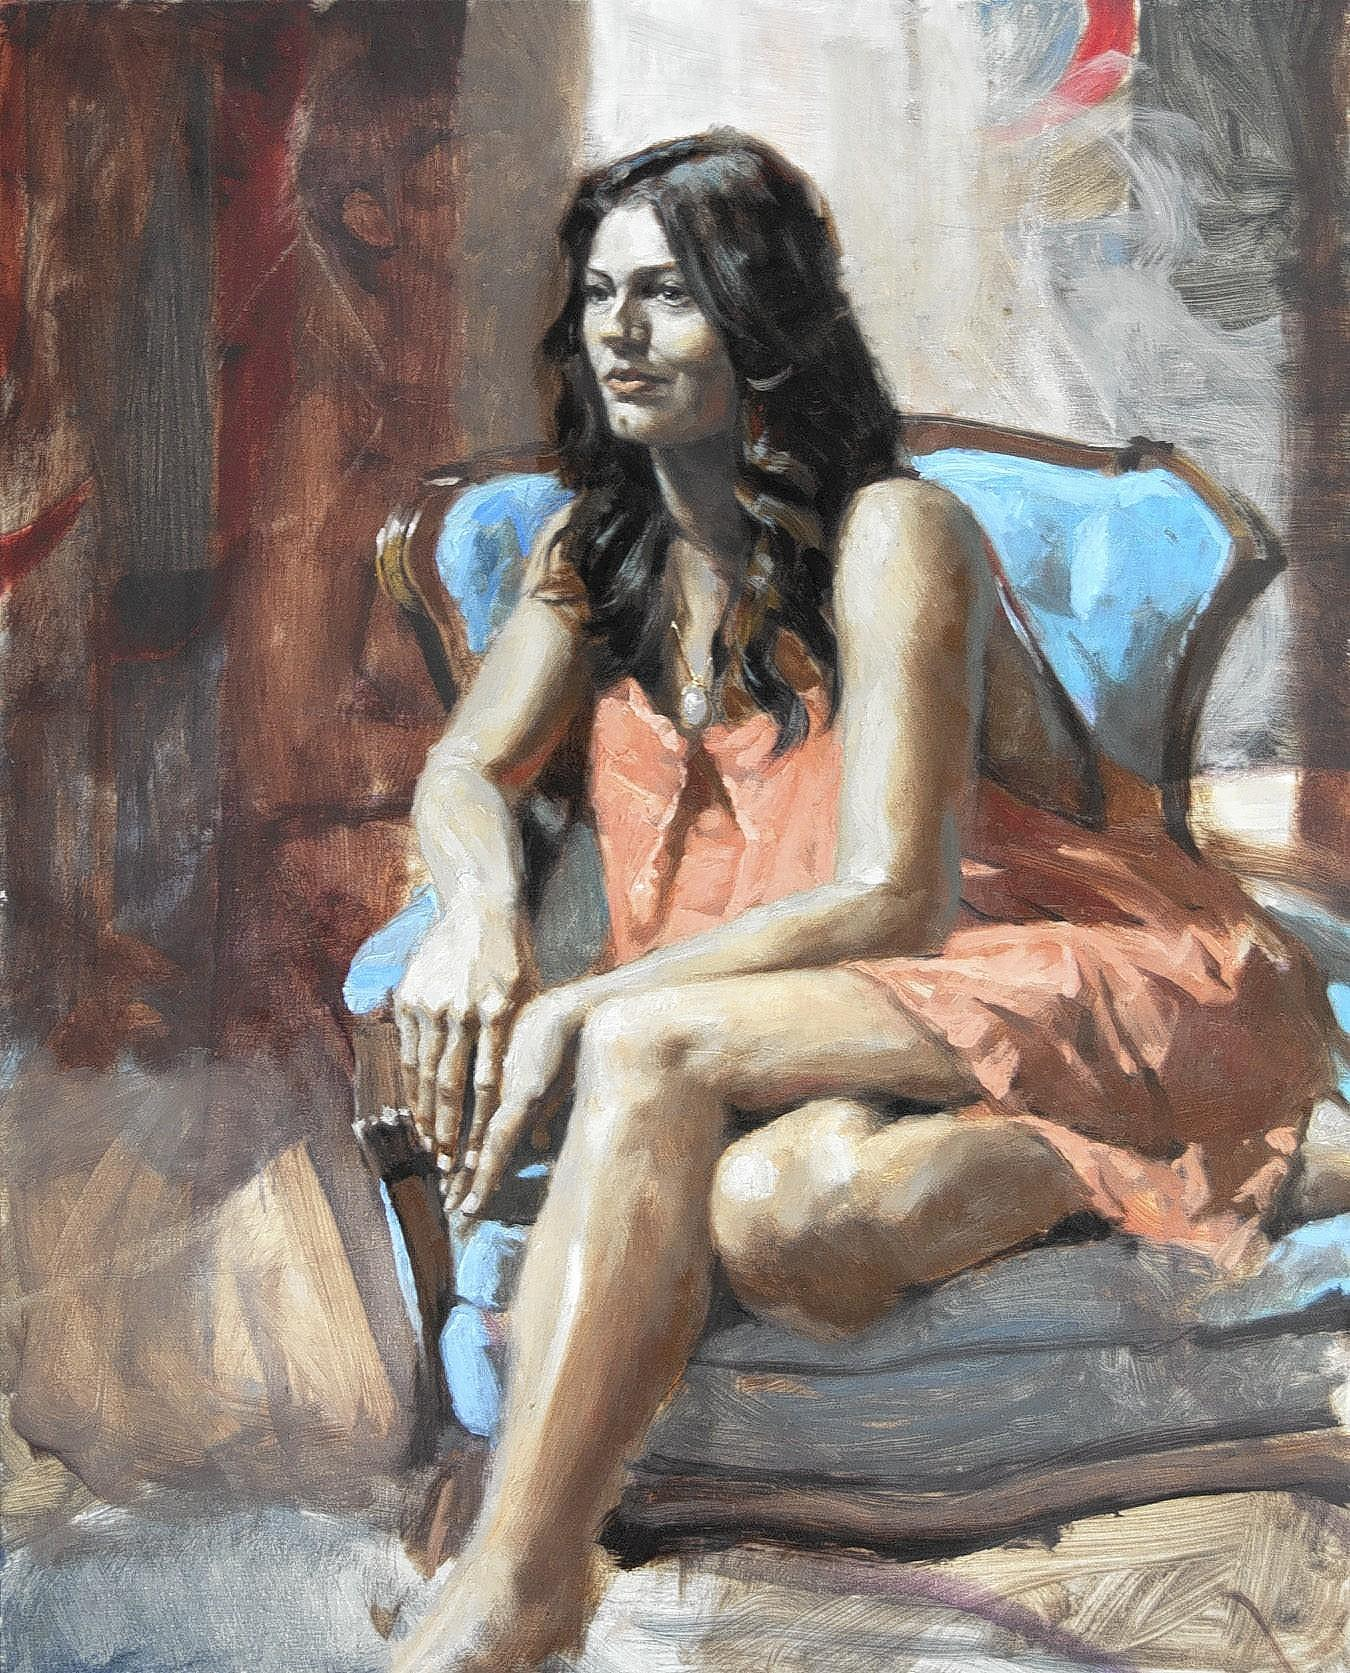 """Dominique,"" an oil painting by Virginia artist Mark E. Miltz, won Best in Show in Virginia Artists 2014 Juried Exhibition at the Charles H. Taylor Arts Center in Hampton."